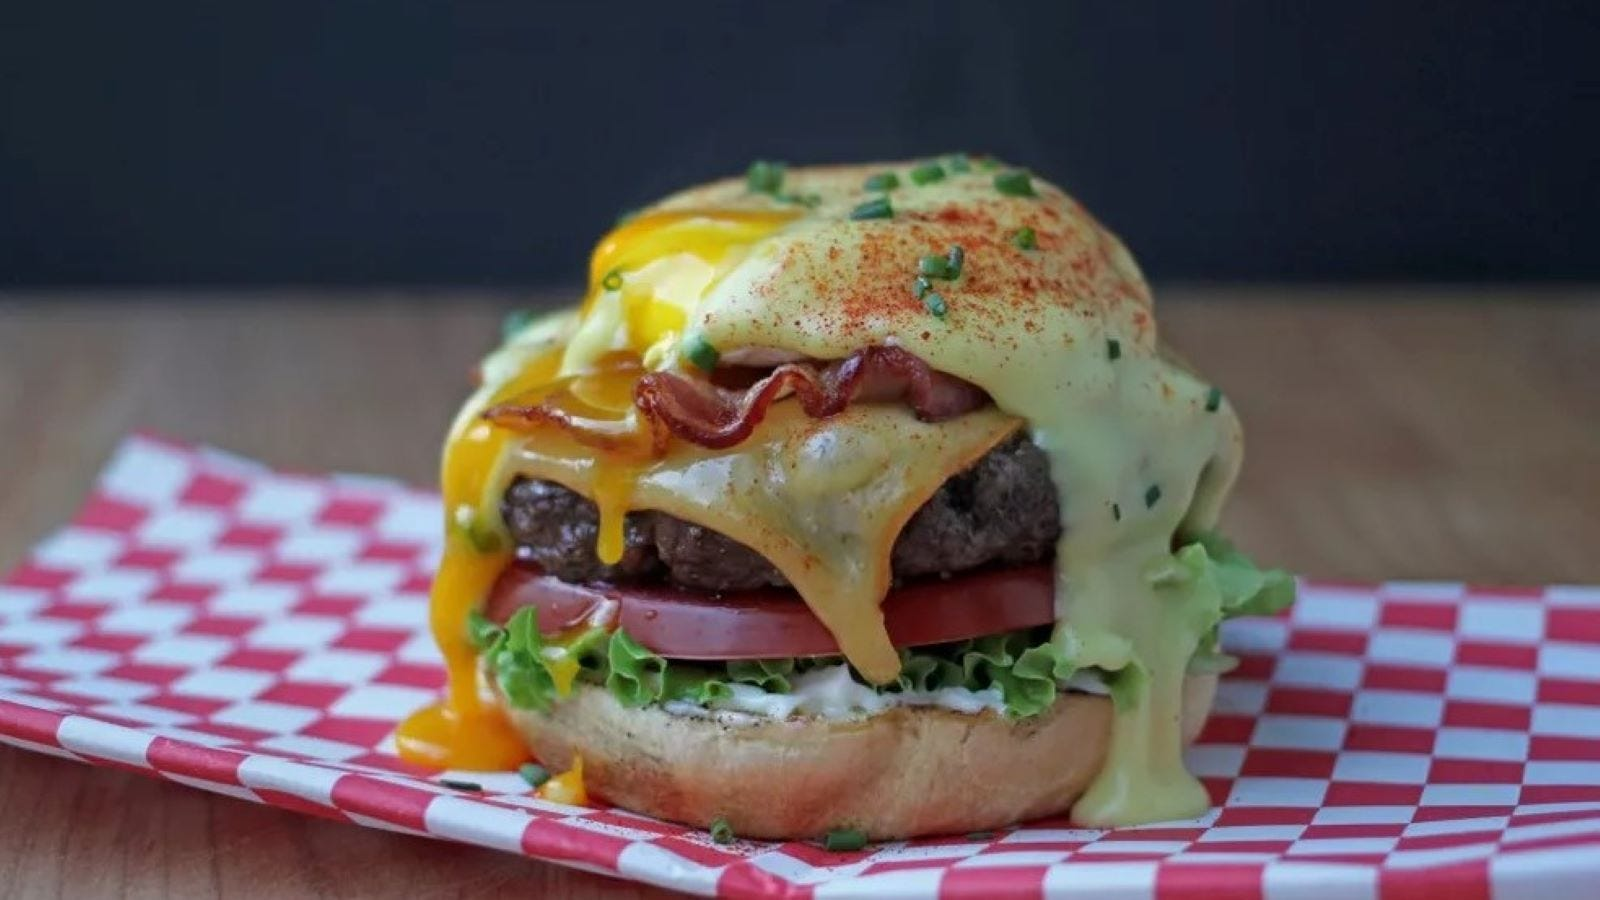 A brunch burger sitting on red-and-white checked paper.